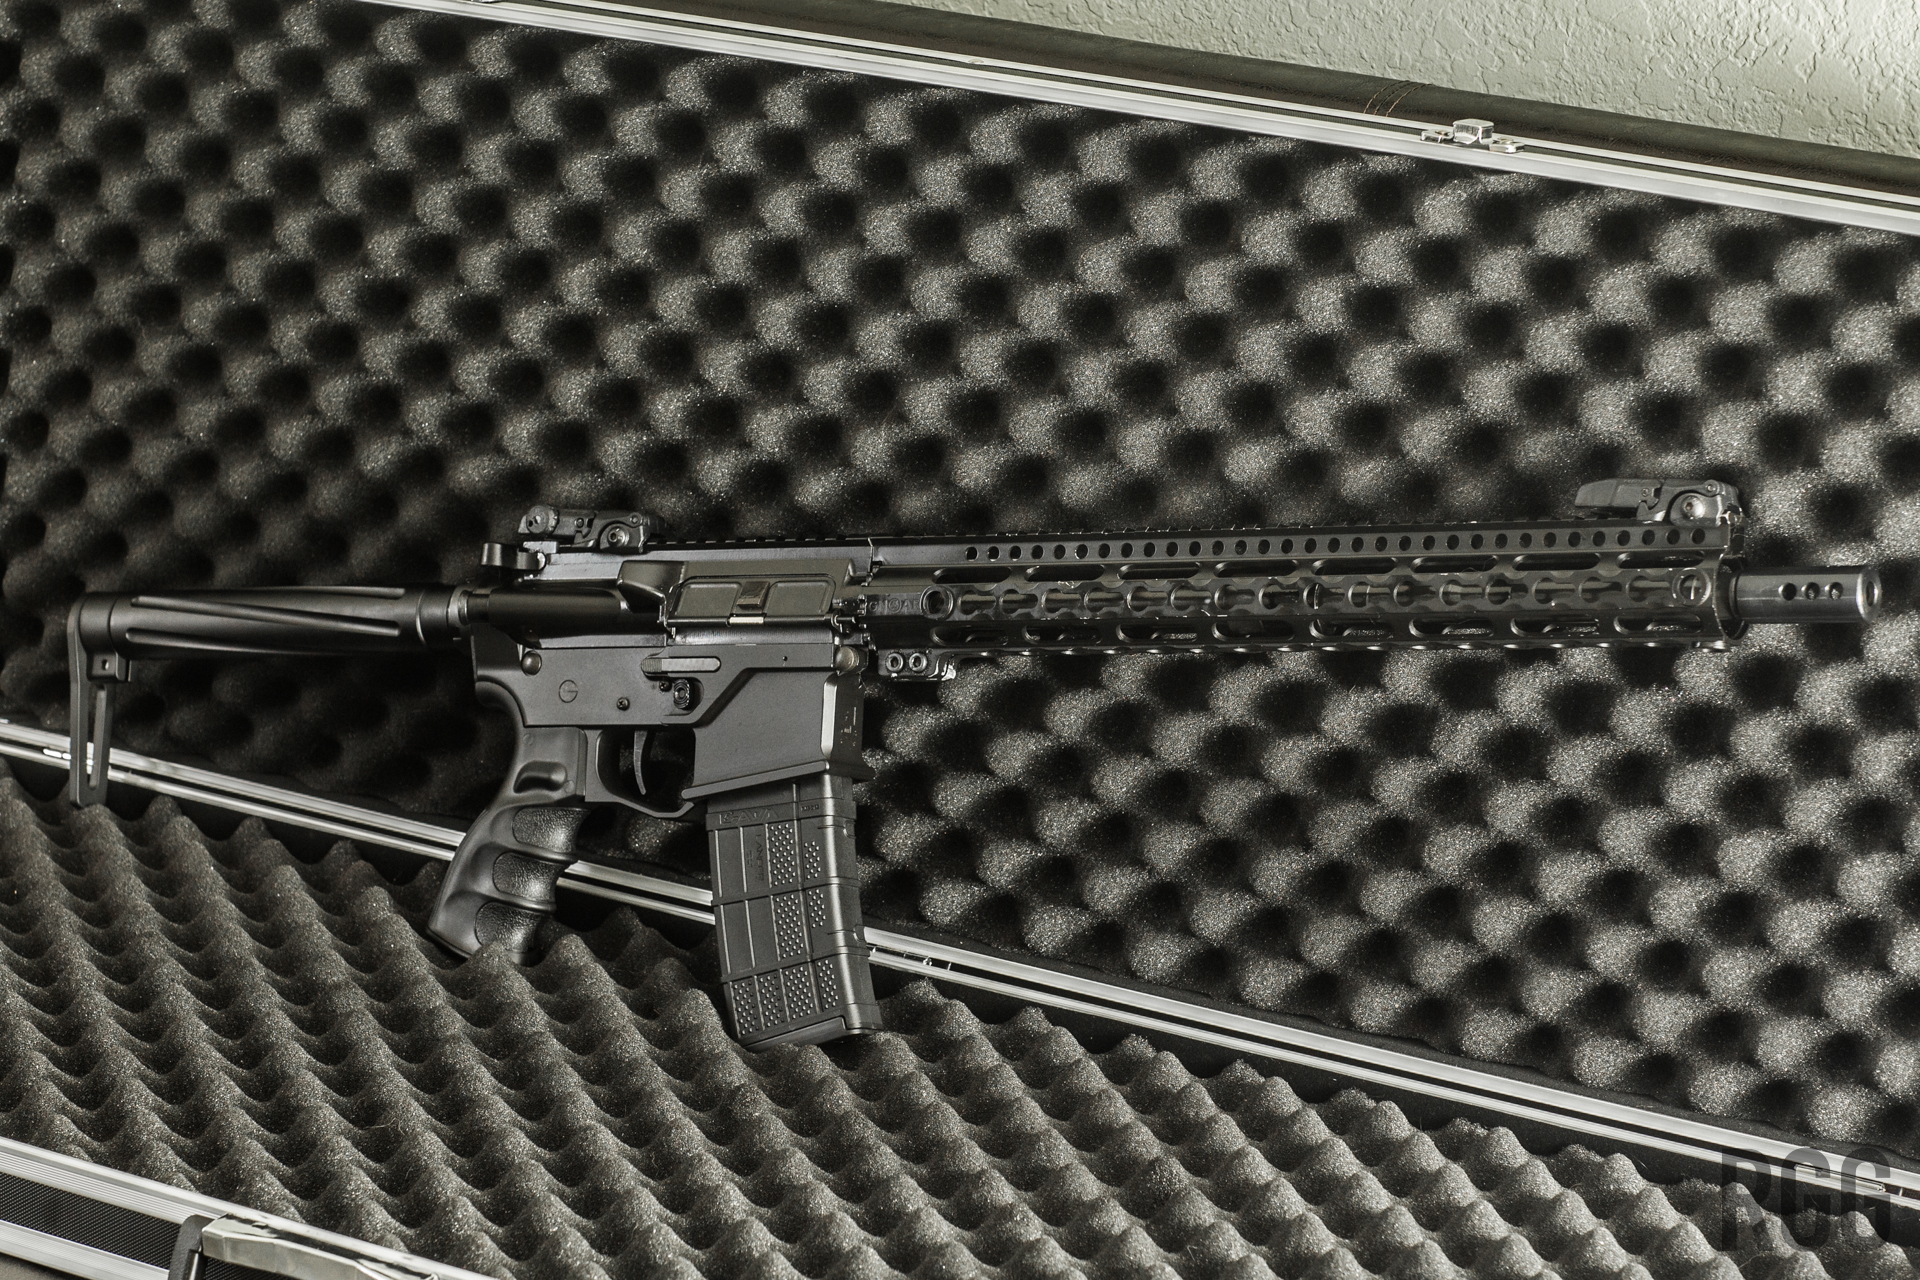 The best rifle for a beginner is a basic rifle